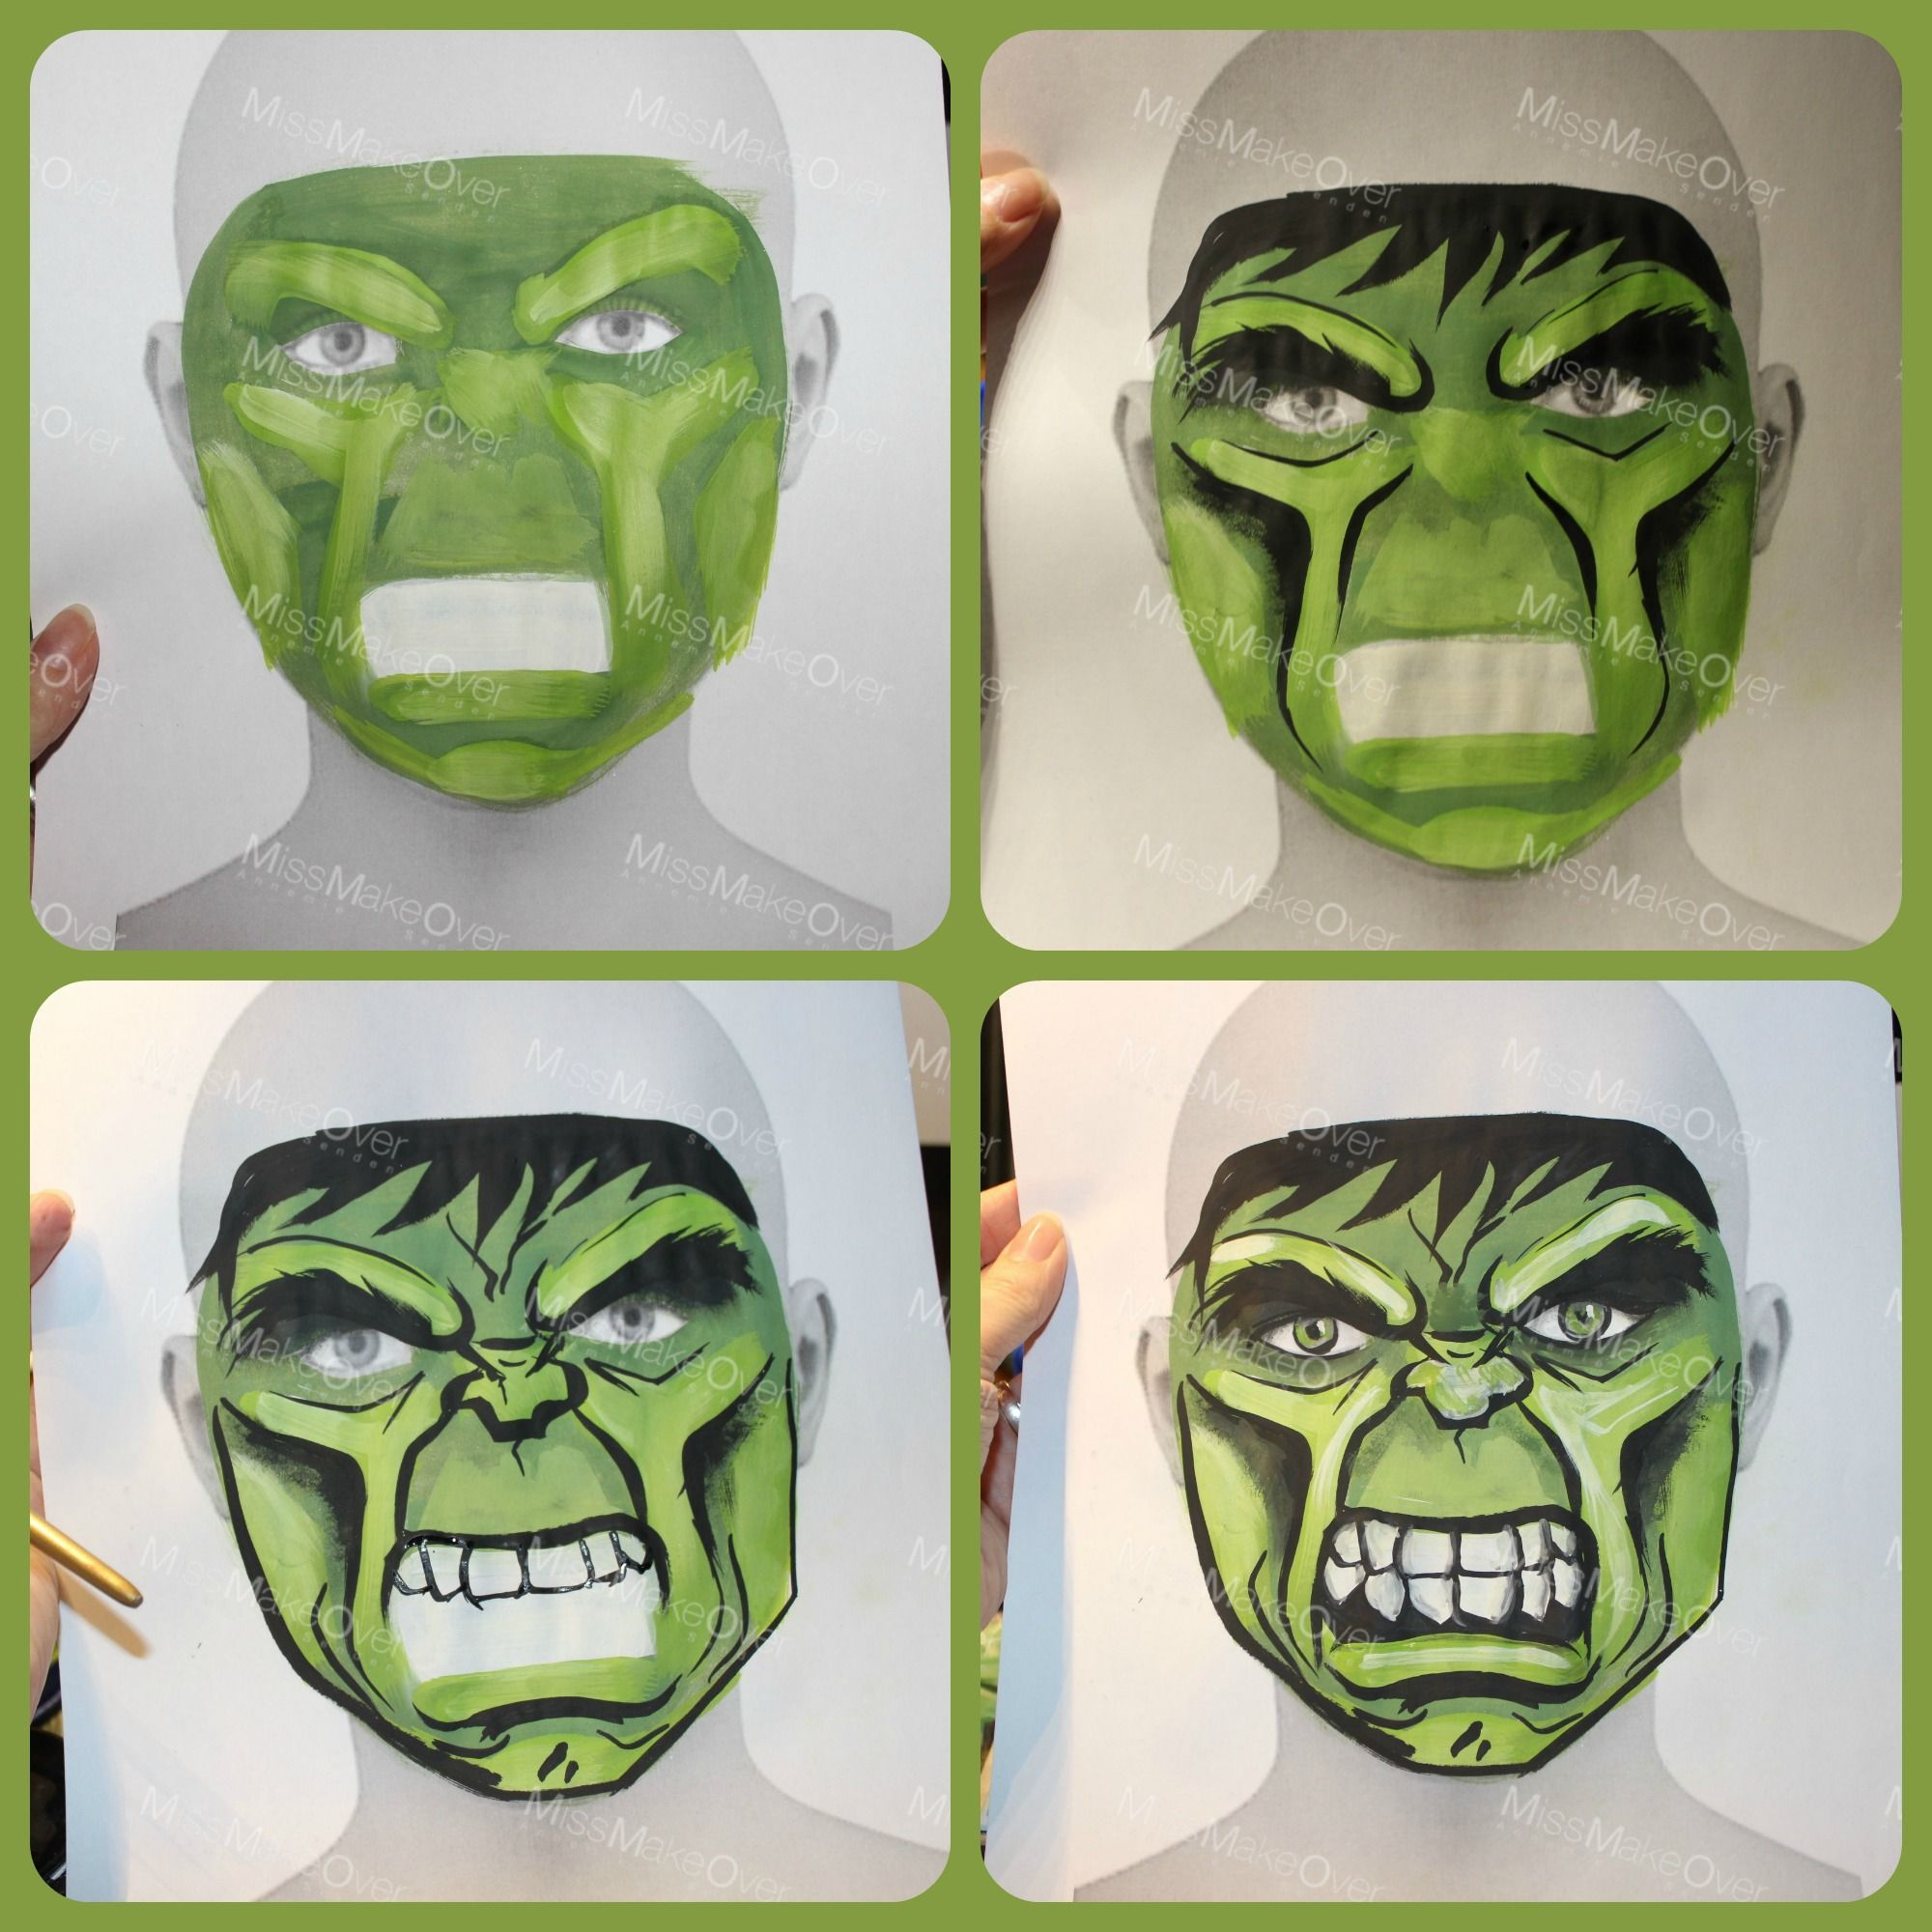 The incredible hulk face paint sketch on face template by for Incredible hulk face template